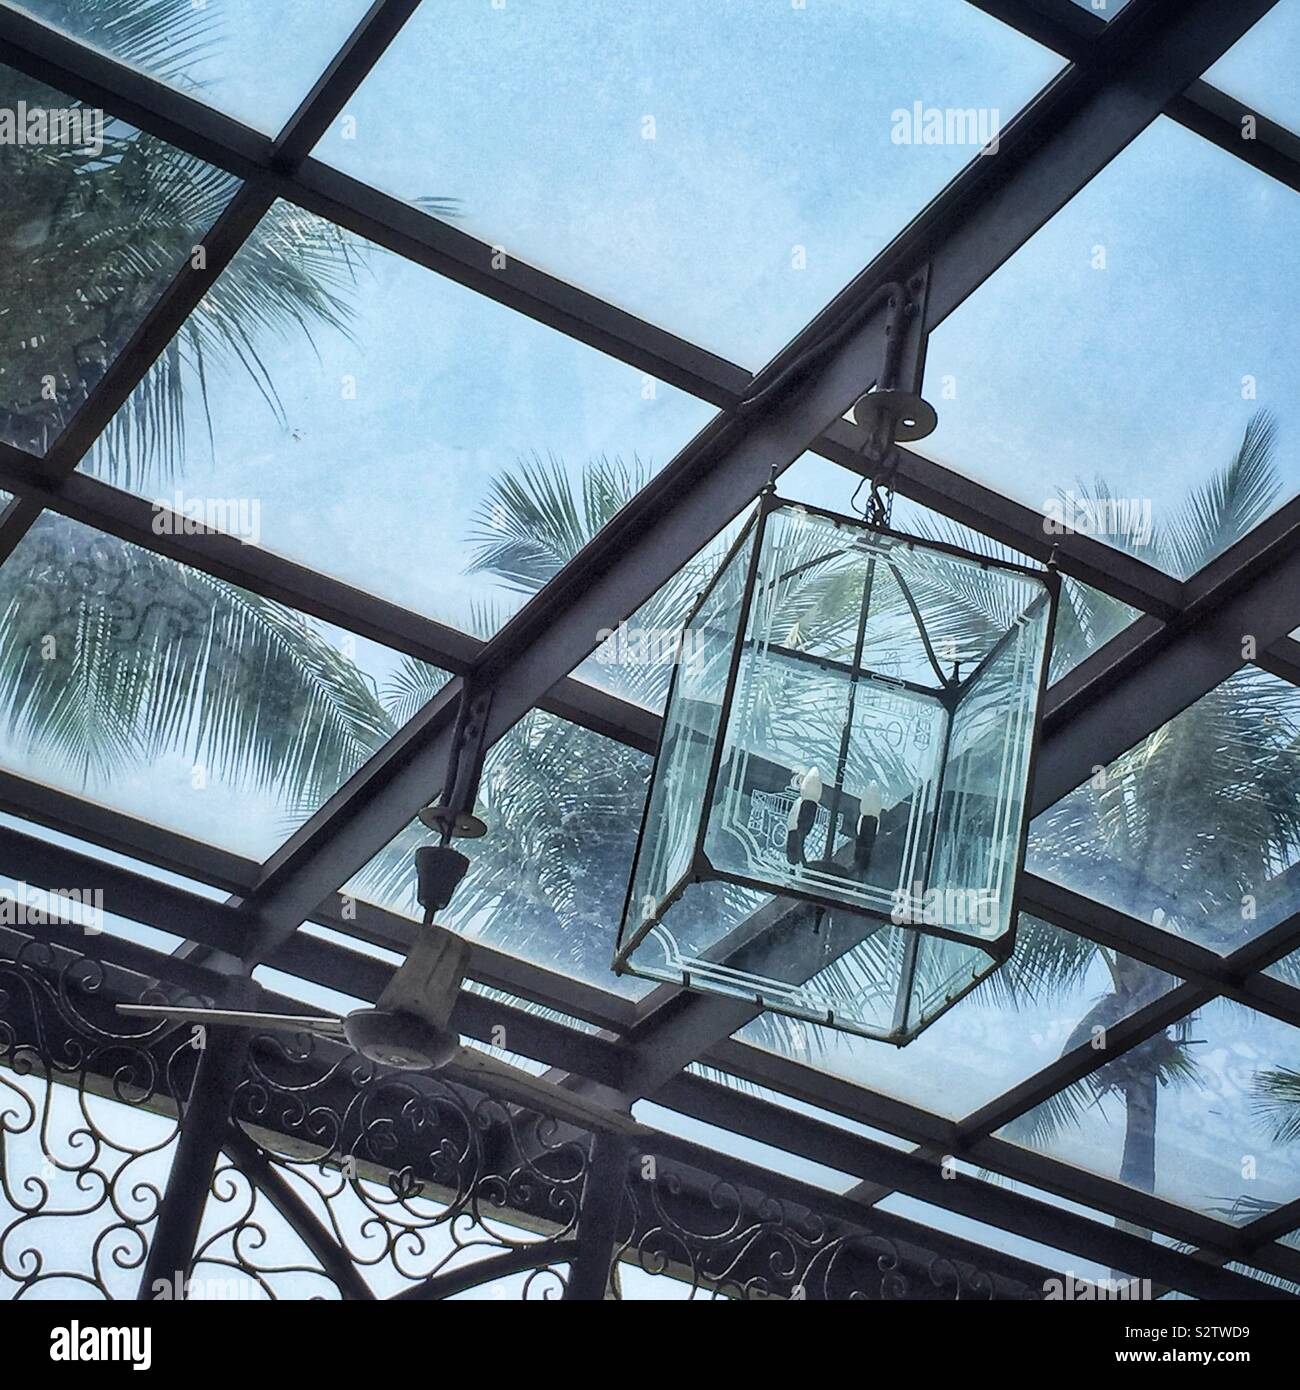 Detail Of The Glass Roof And A Lamp In The Outdoor Area Of Sarkies Restaurant In The Eastern Orient Hotel George Town Penang Malaysia Stock Photo Alamy